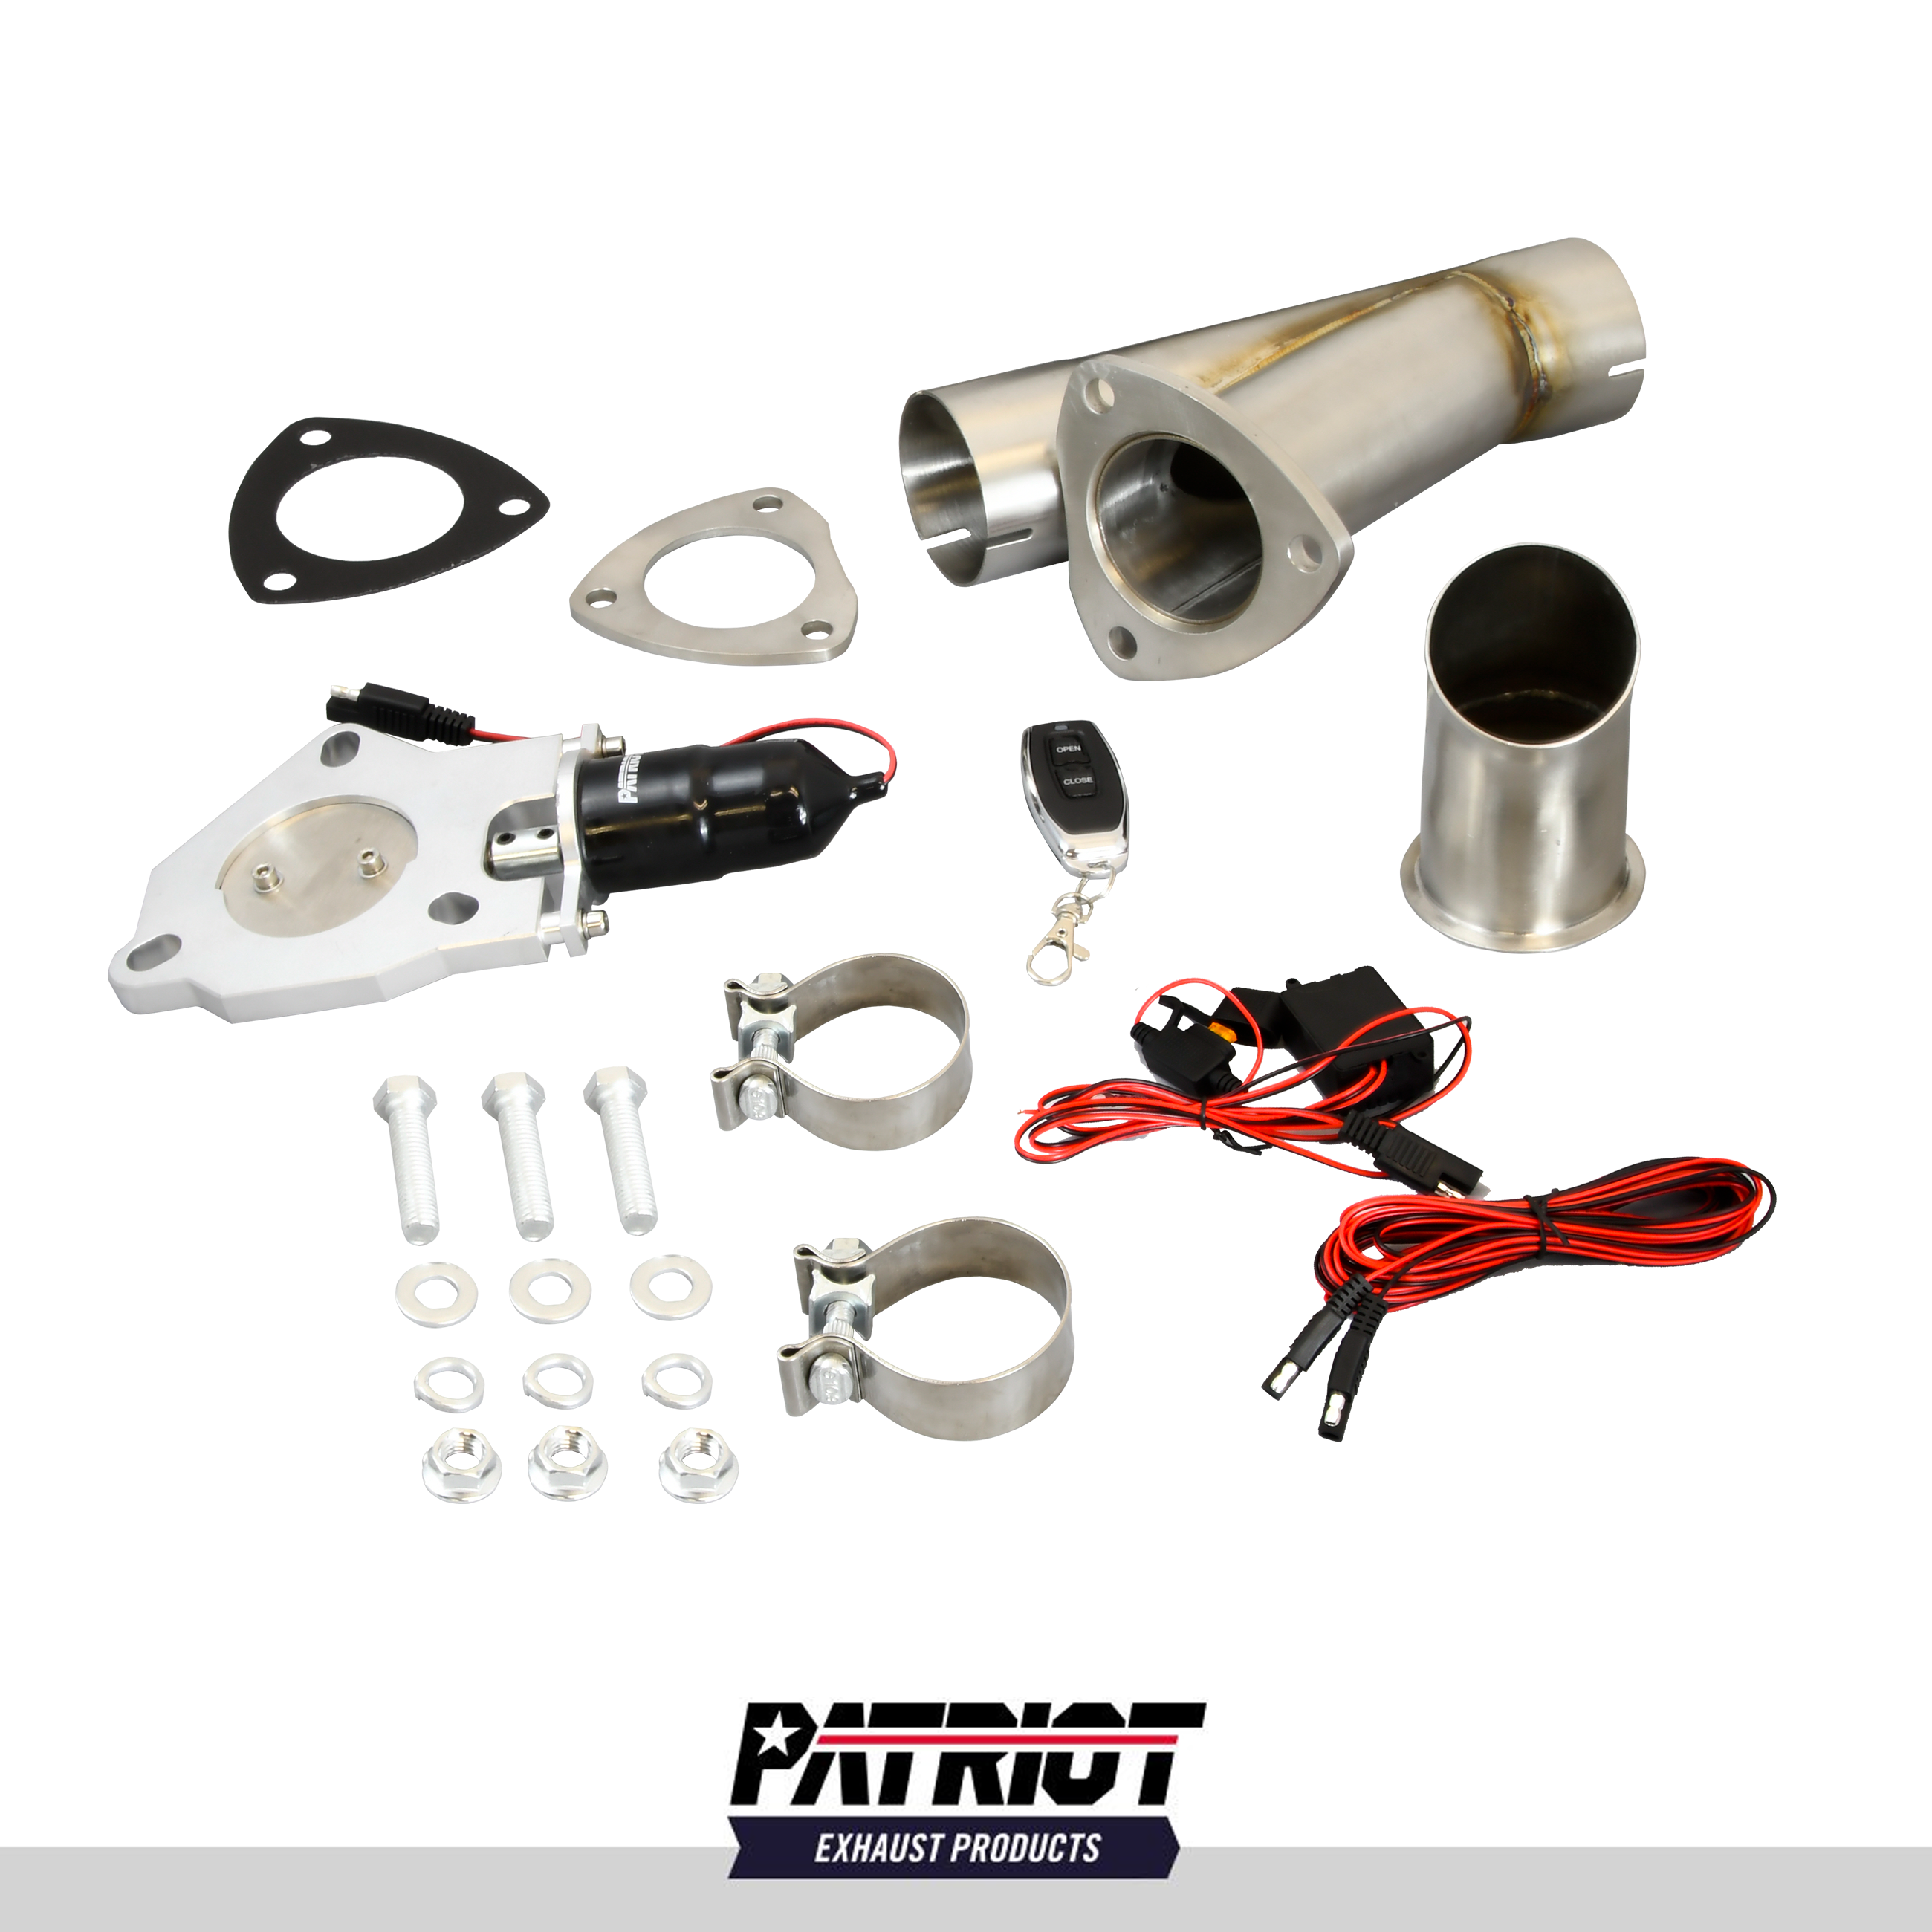 "Patriot Exhaust PEC250K-1 Electronic Cutouts 2.5"" Single System"